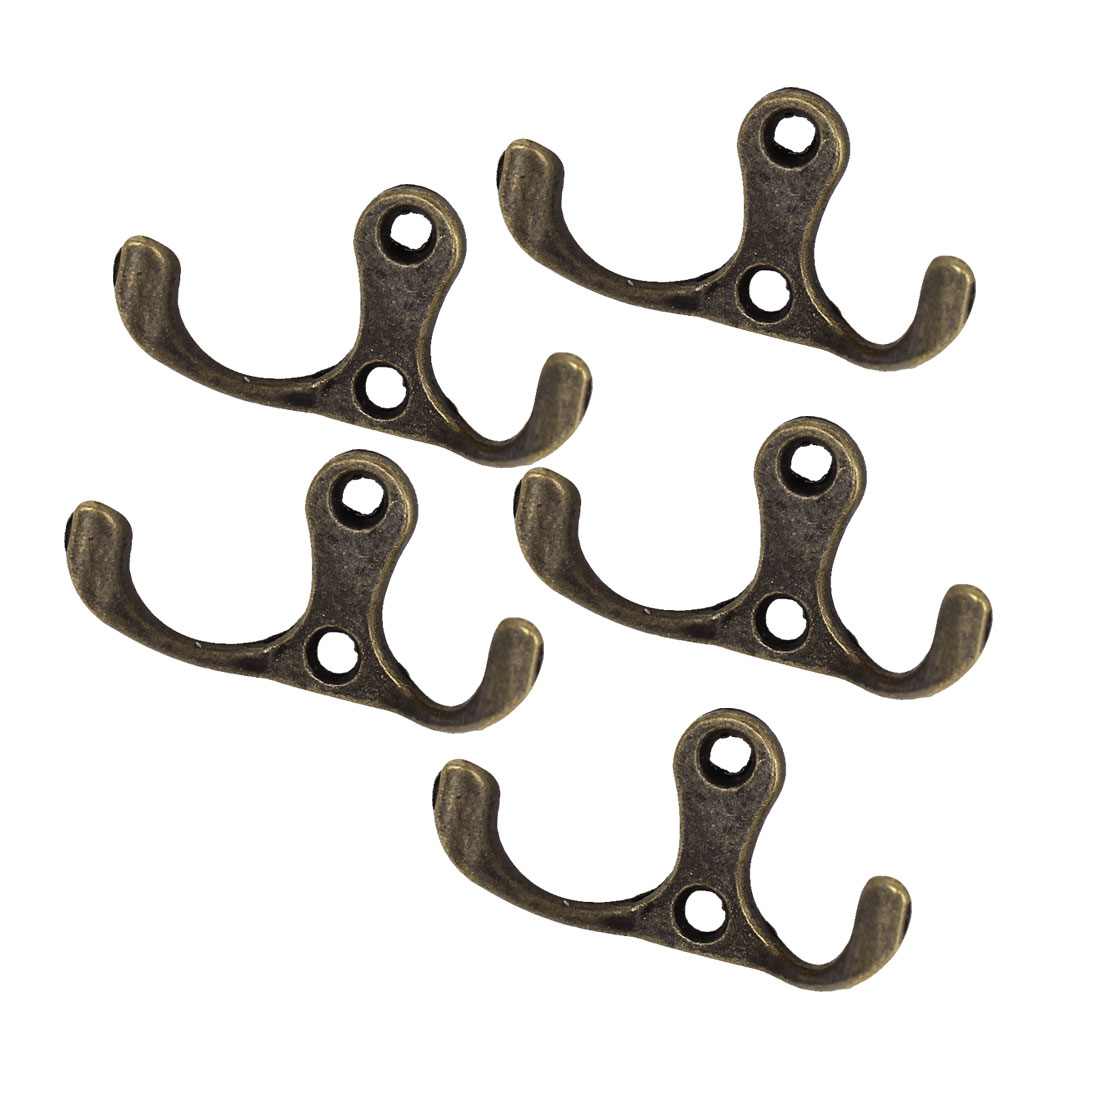 Bath Door Wall Hat Coat Hanging Vintage Style Double Prong Hanger Hooks 5pcs